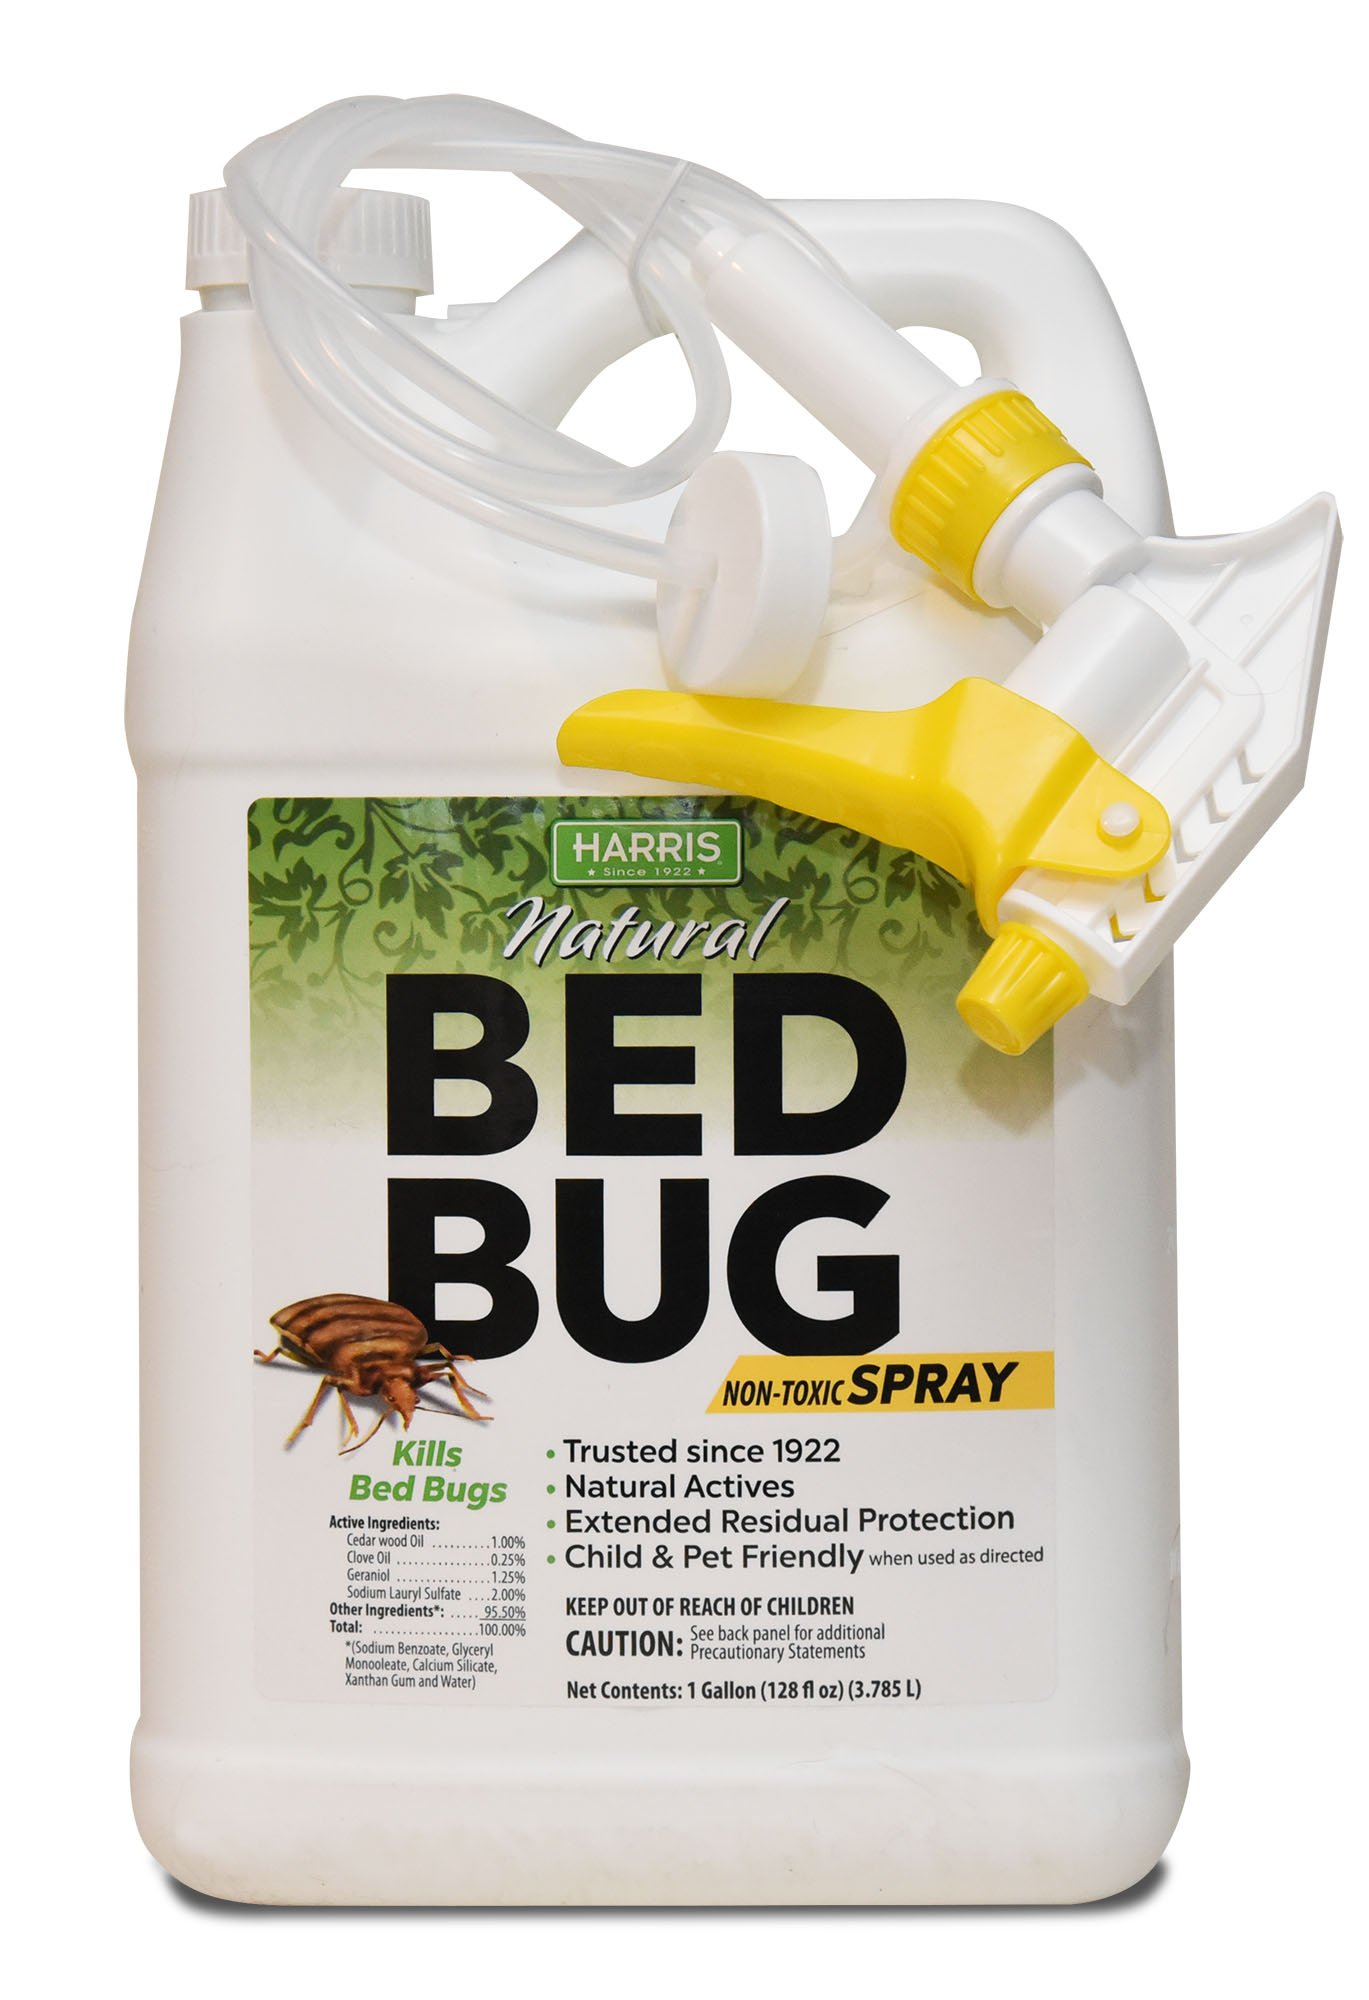 Harris Natural Bed Bug Killer, Fast Acting Non-Toxic Spray with Extended Residual (Gallon)